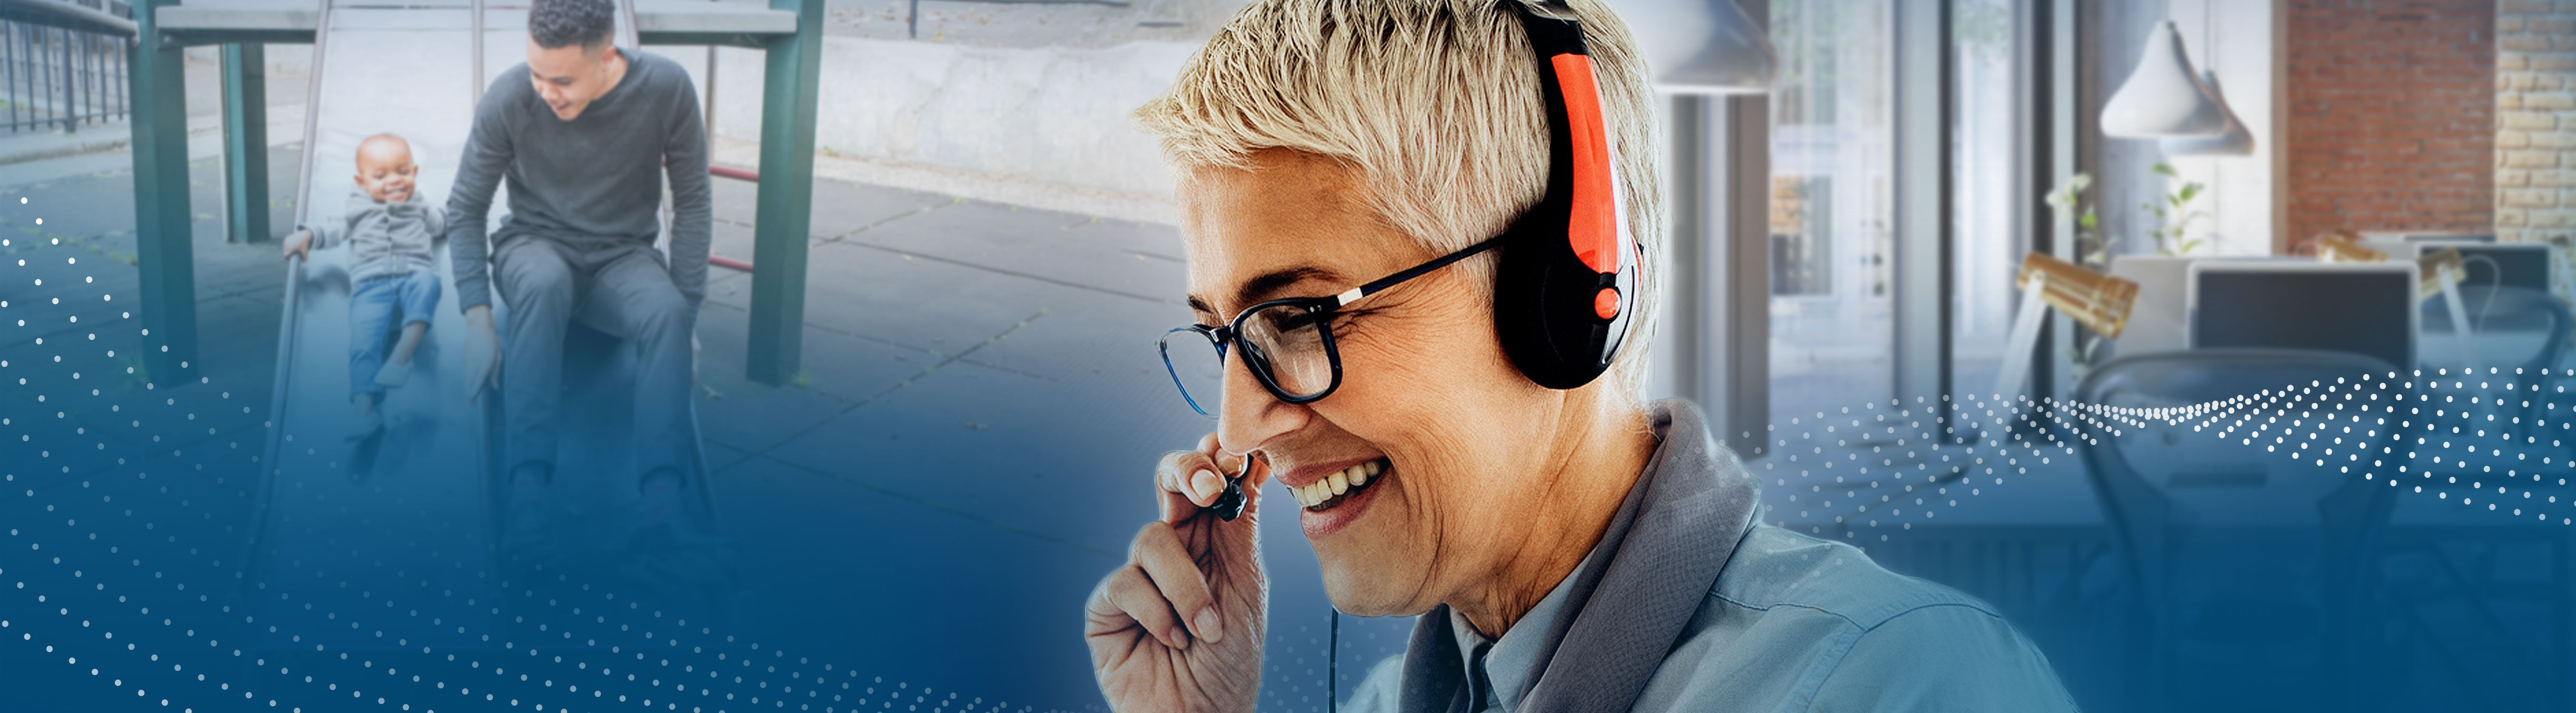 Support Representative with headset